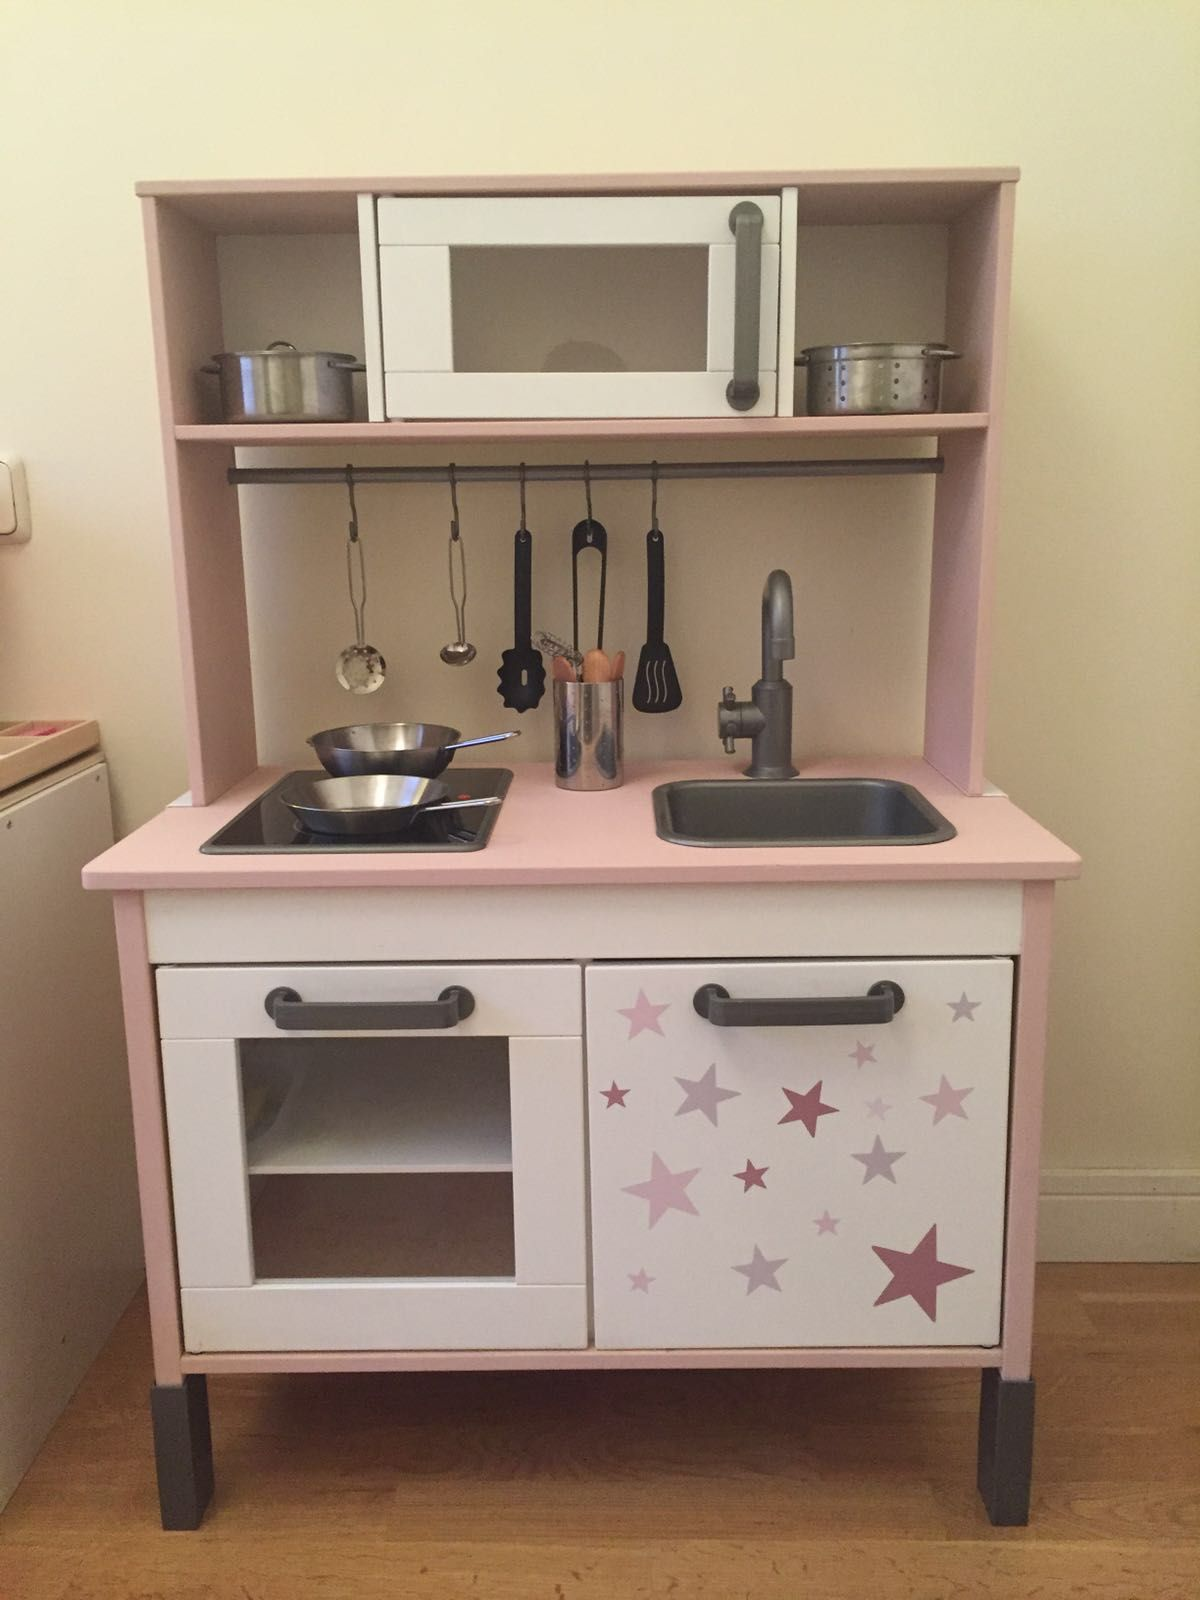 Cocinita De Ikea Tuneada Kitchen Kids Duktig Kmart Kitchen Hack